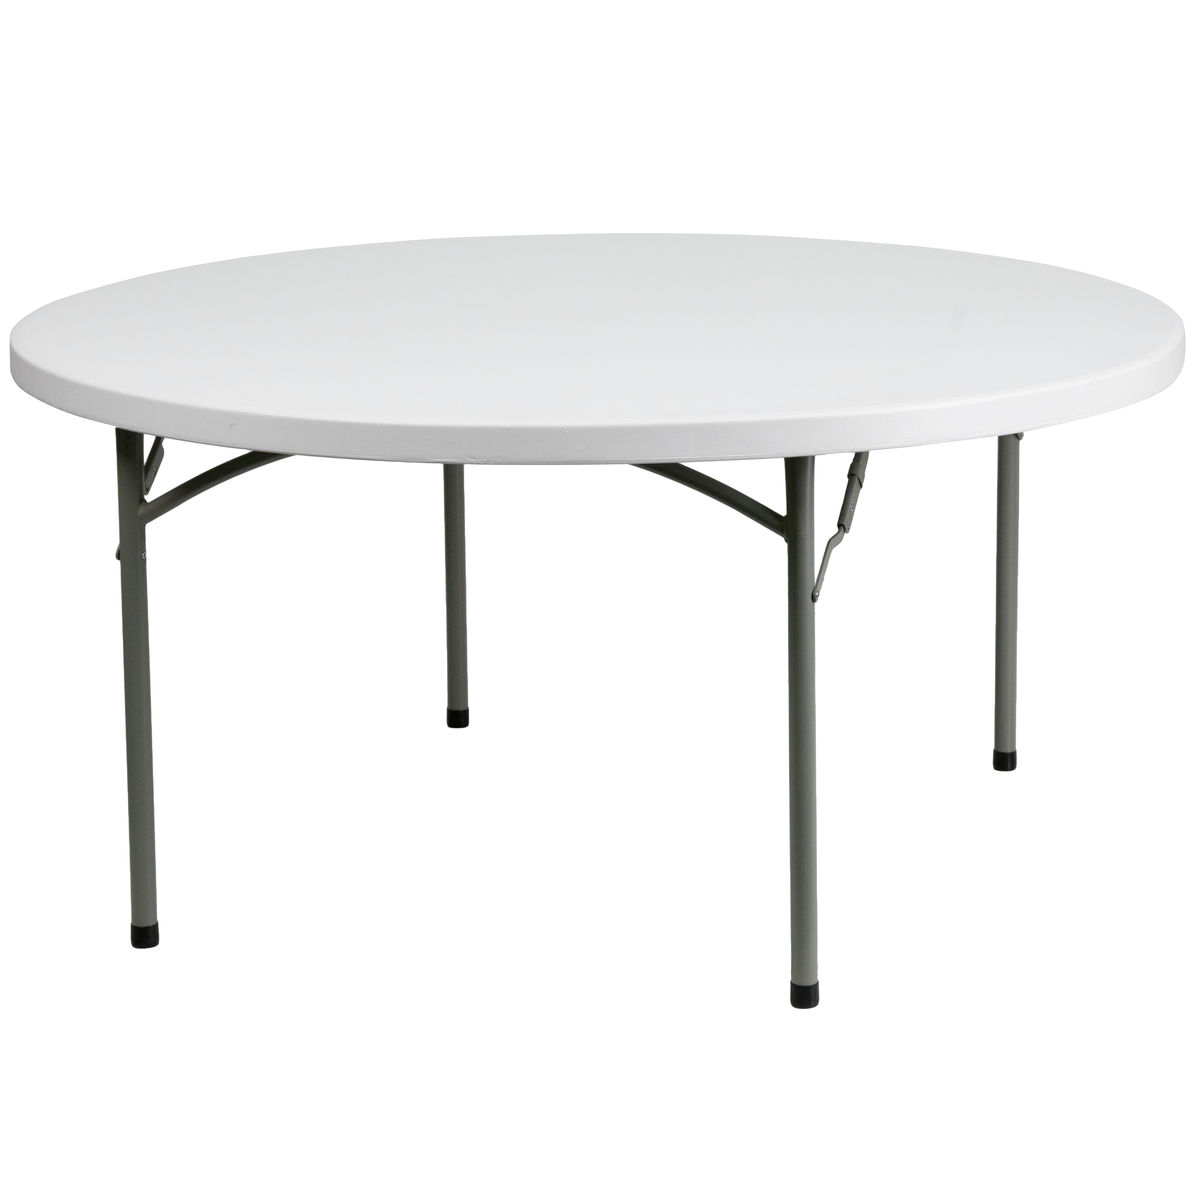 table pliante ronde hdpe 150 cm vente de mobilier de r ception. Black Bedroom Furniture Sets. Home Design Ideas